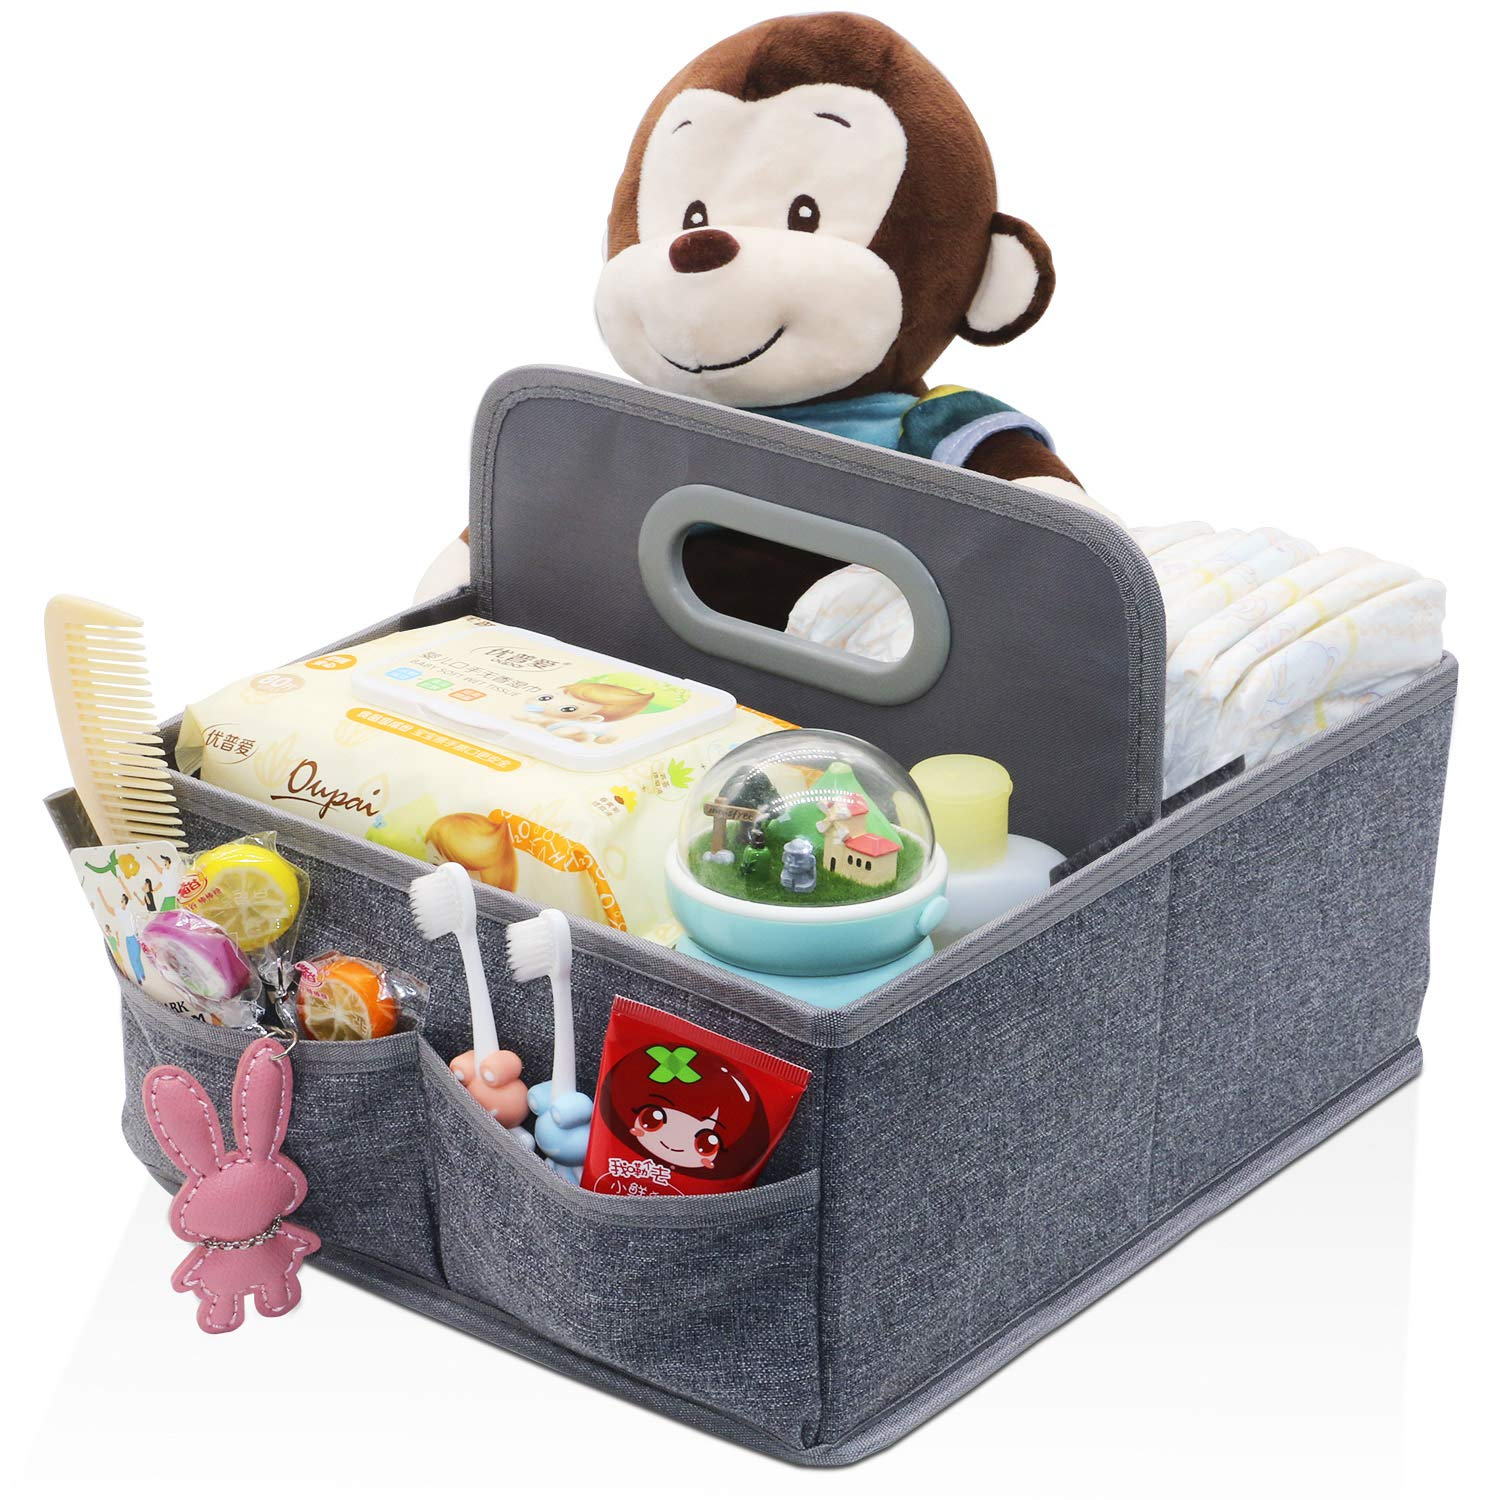 Onlyeasy Foldable Diaper & Wipes Caddy, Portable Baby Diaper Changing Organizer, Nursery Storage Bin and Car Organizer, Perfect Gift for Baby Shower, Terry Grey, MXLDC